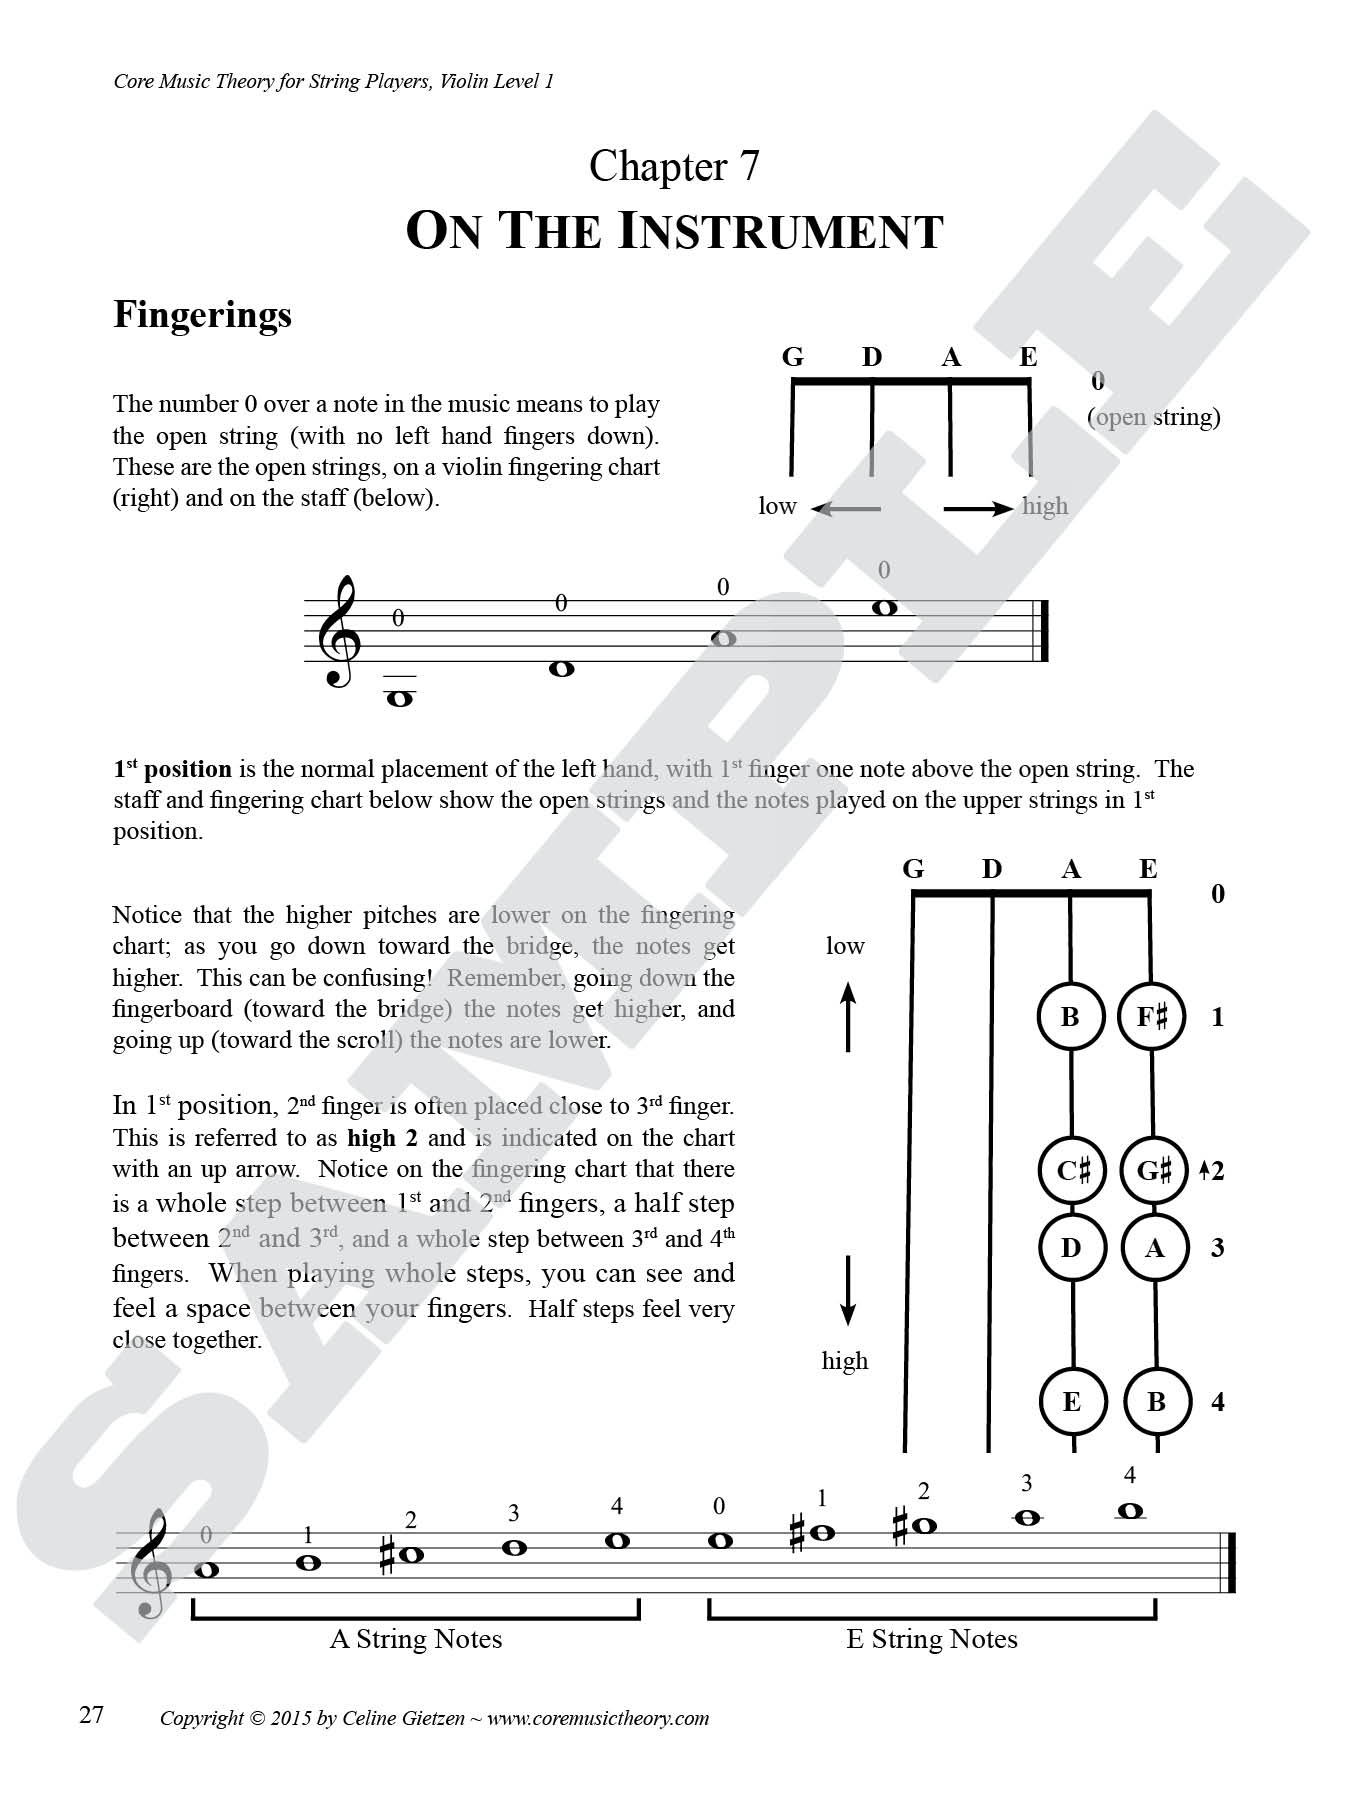 Sample Pages — Core Music Theory for String Players